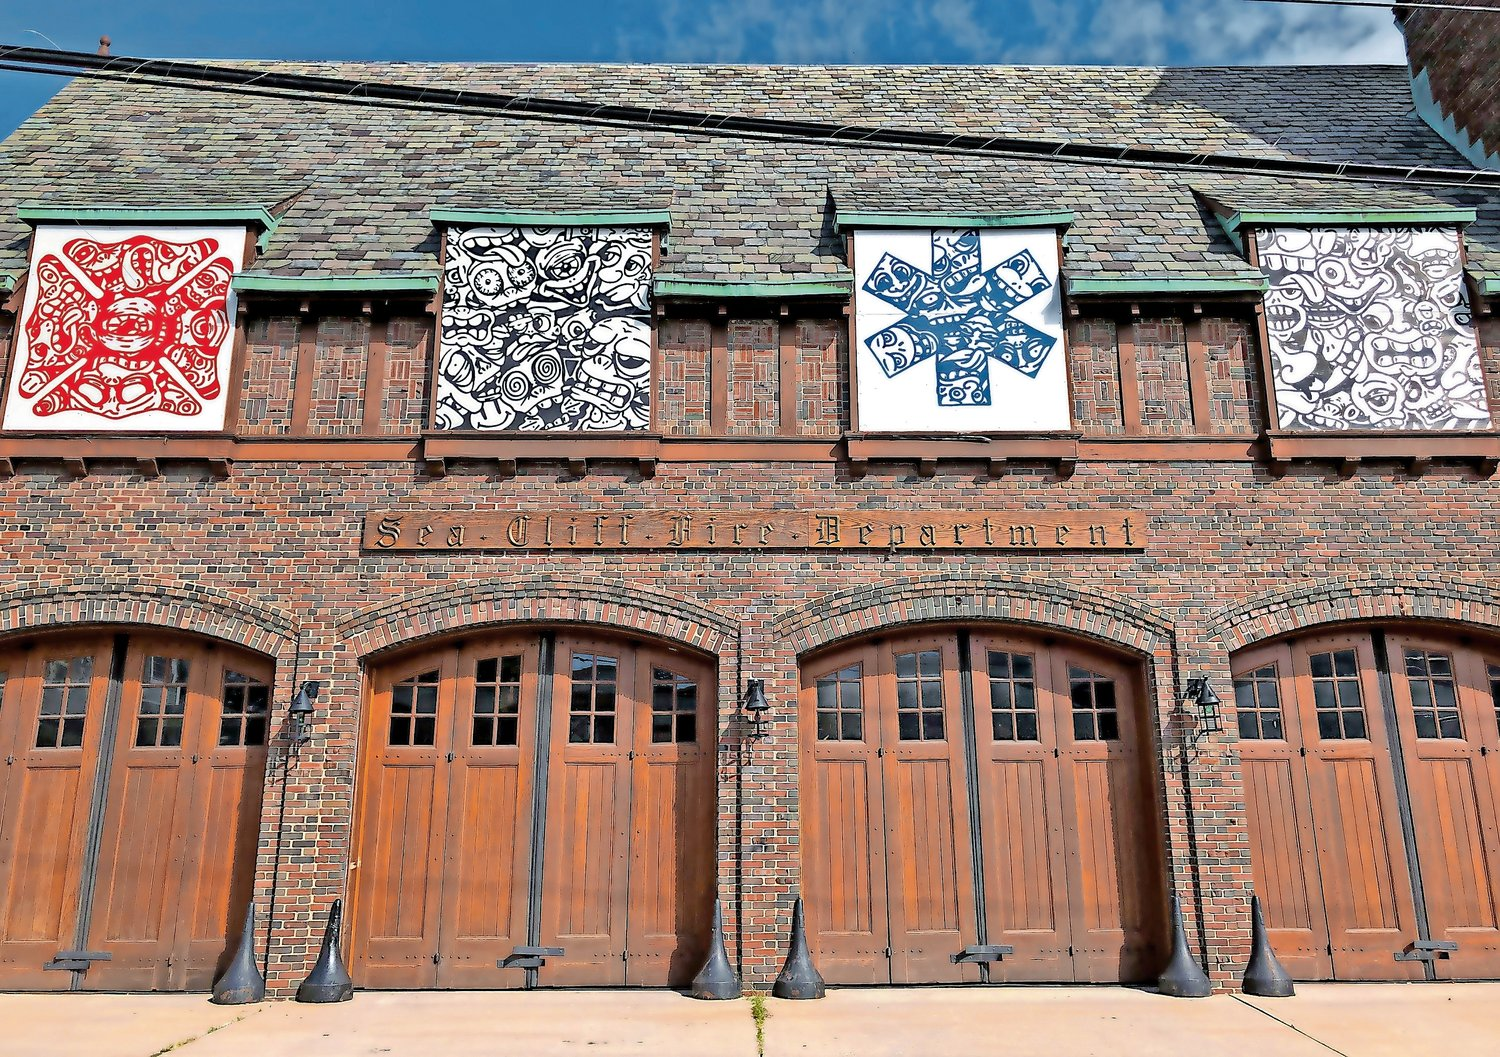 During renovations, the windows of the Sea Cliff Firehouse were replaced by an eye-catching art installation designed by local artist James Roth.